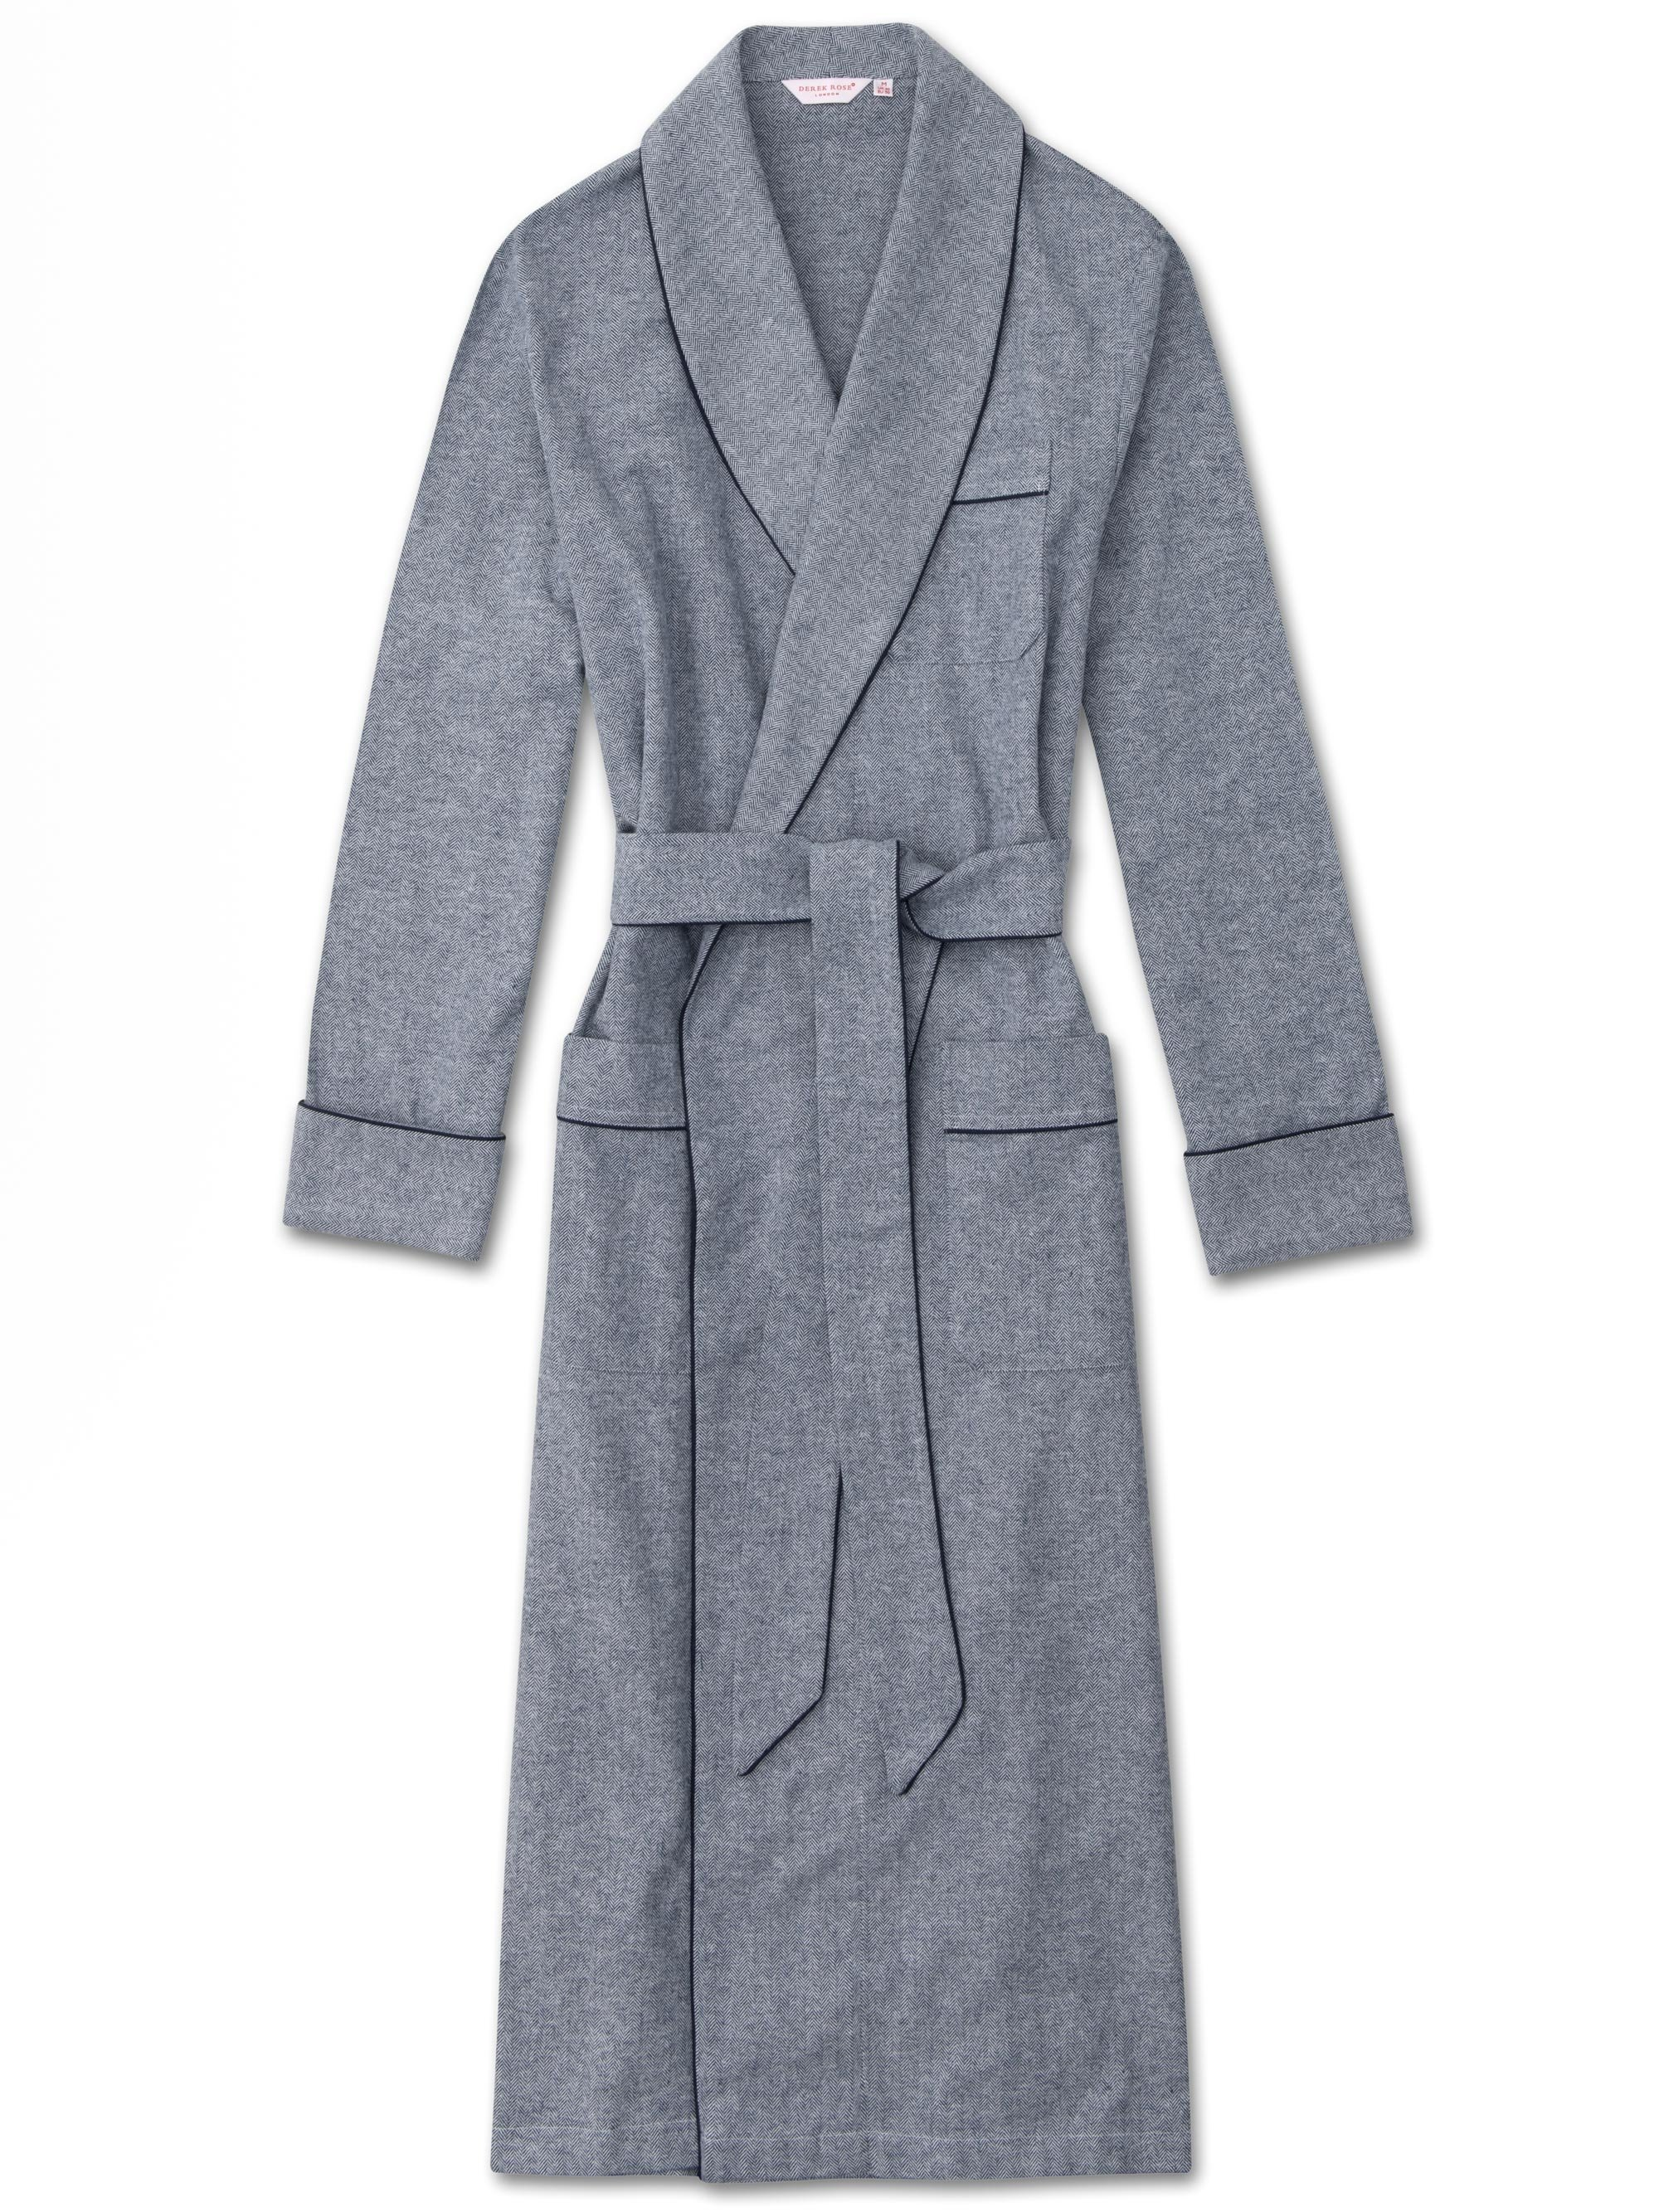 Men's Piped Dressing Gown Kelburn 5 Brushed Cotton Navy